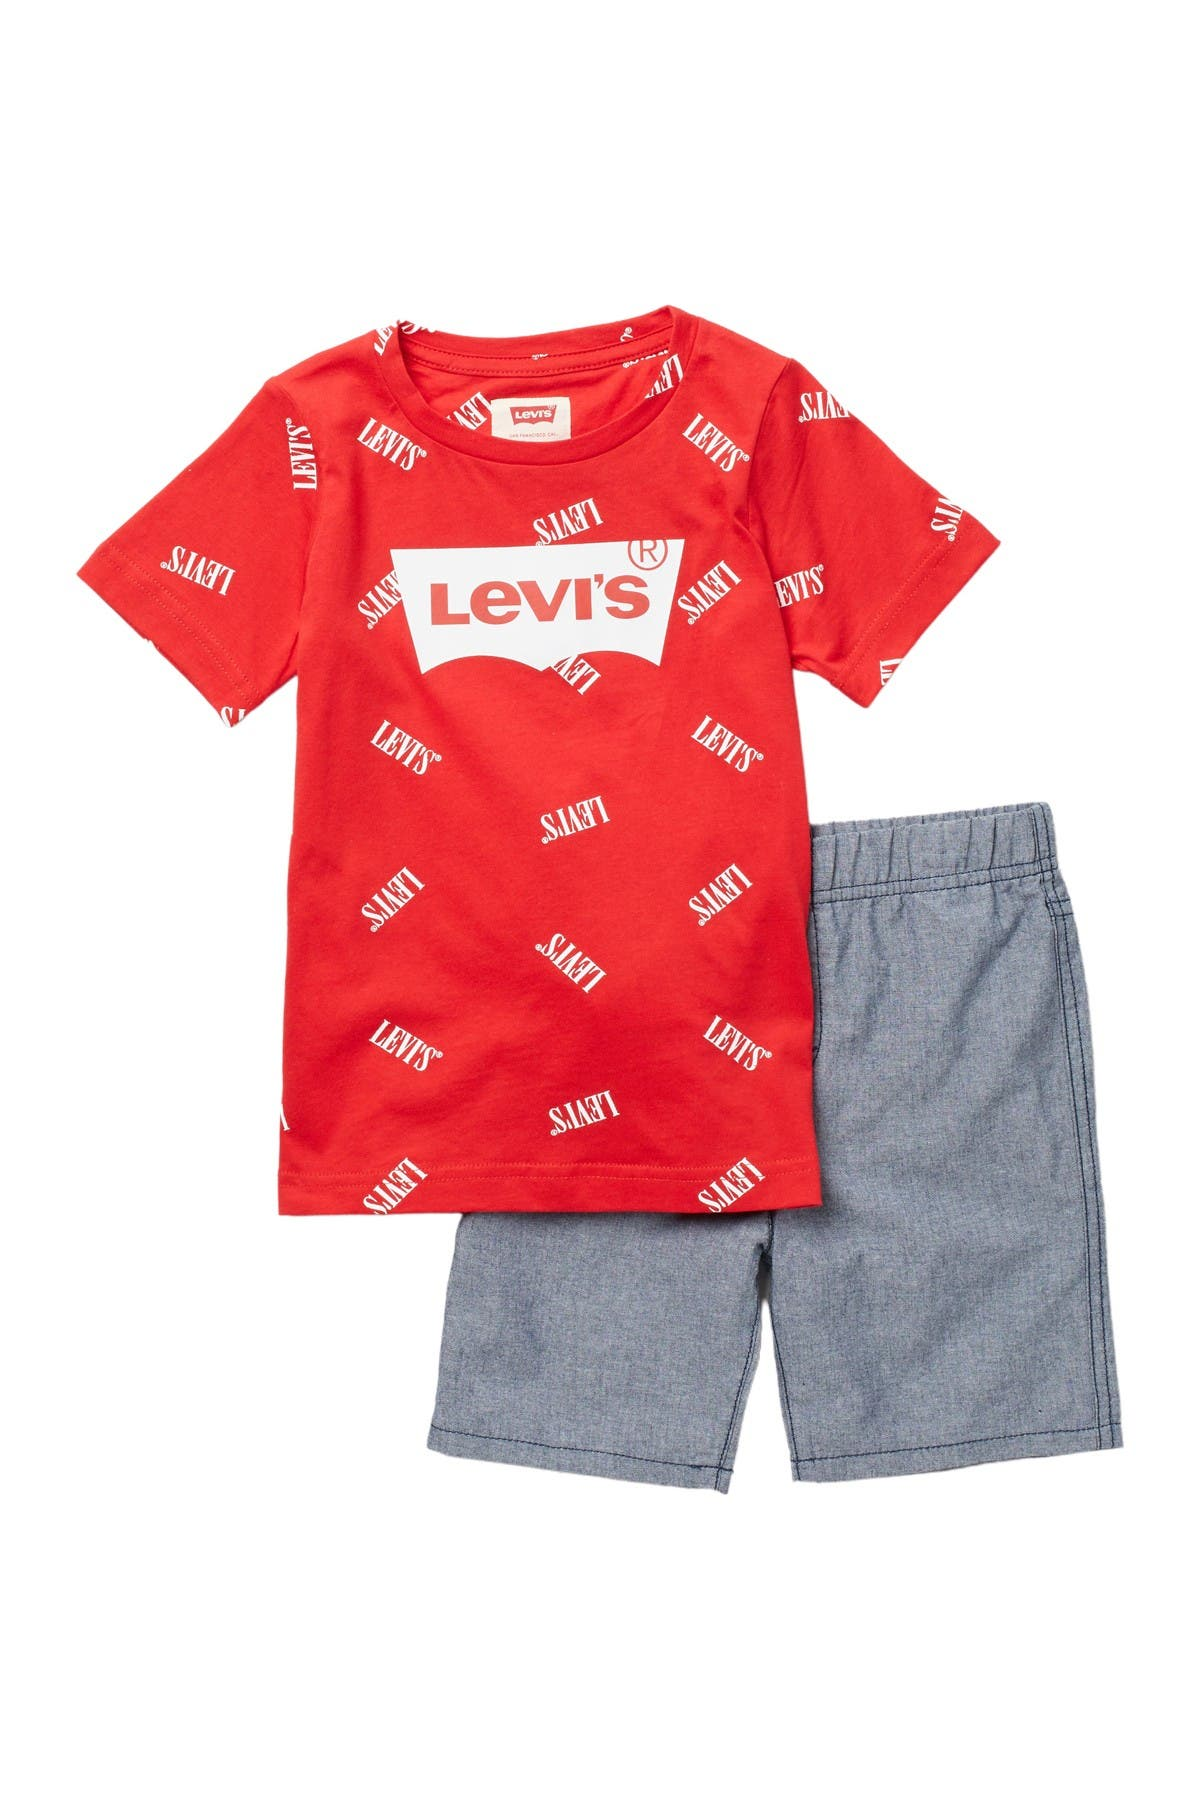 Image of Levi's Inside Out Tee & Shorts Set